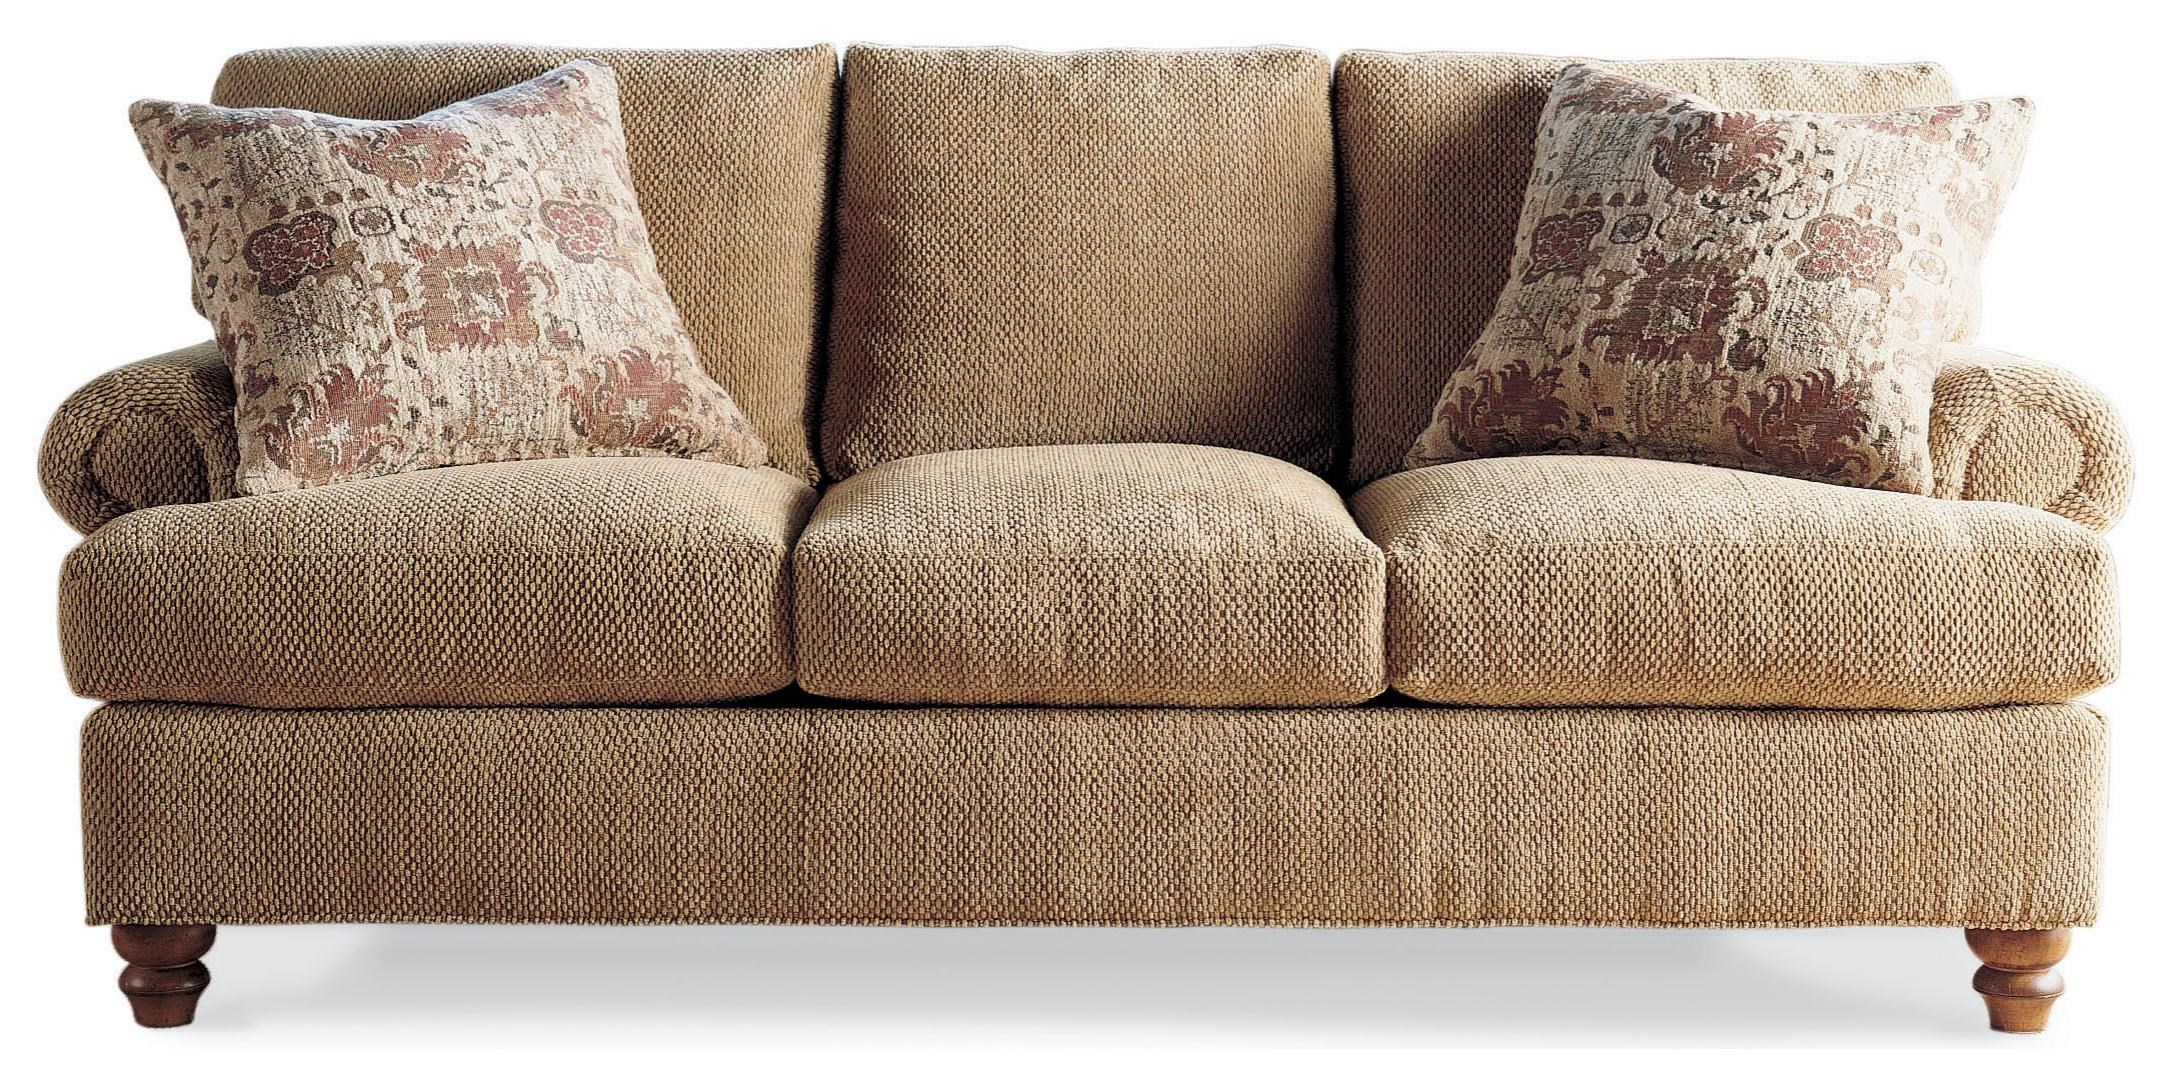 drexel heritage sofa prices beds under 200 sofas upholstery dhu by baer s